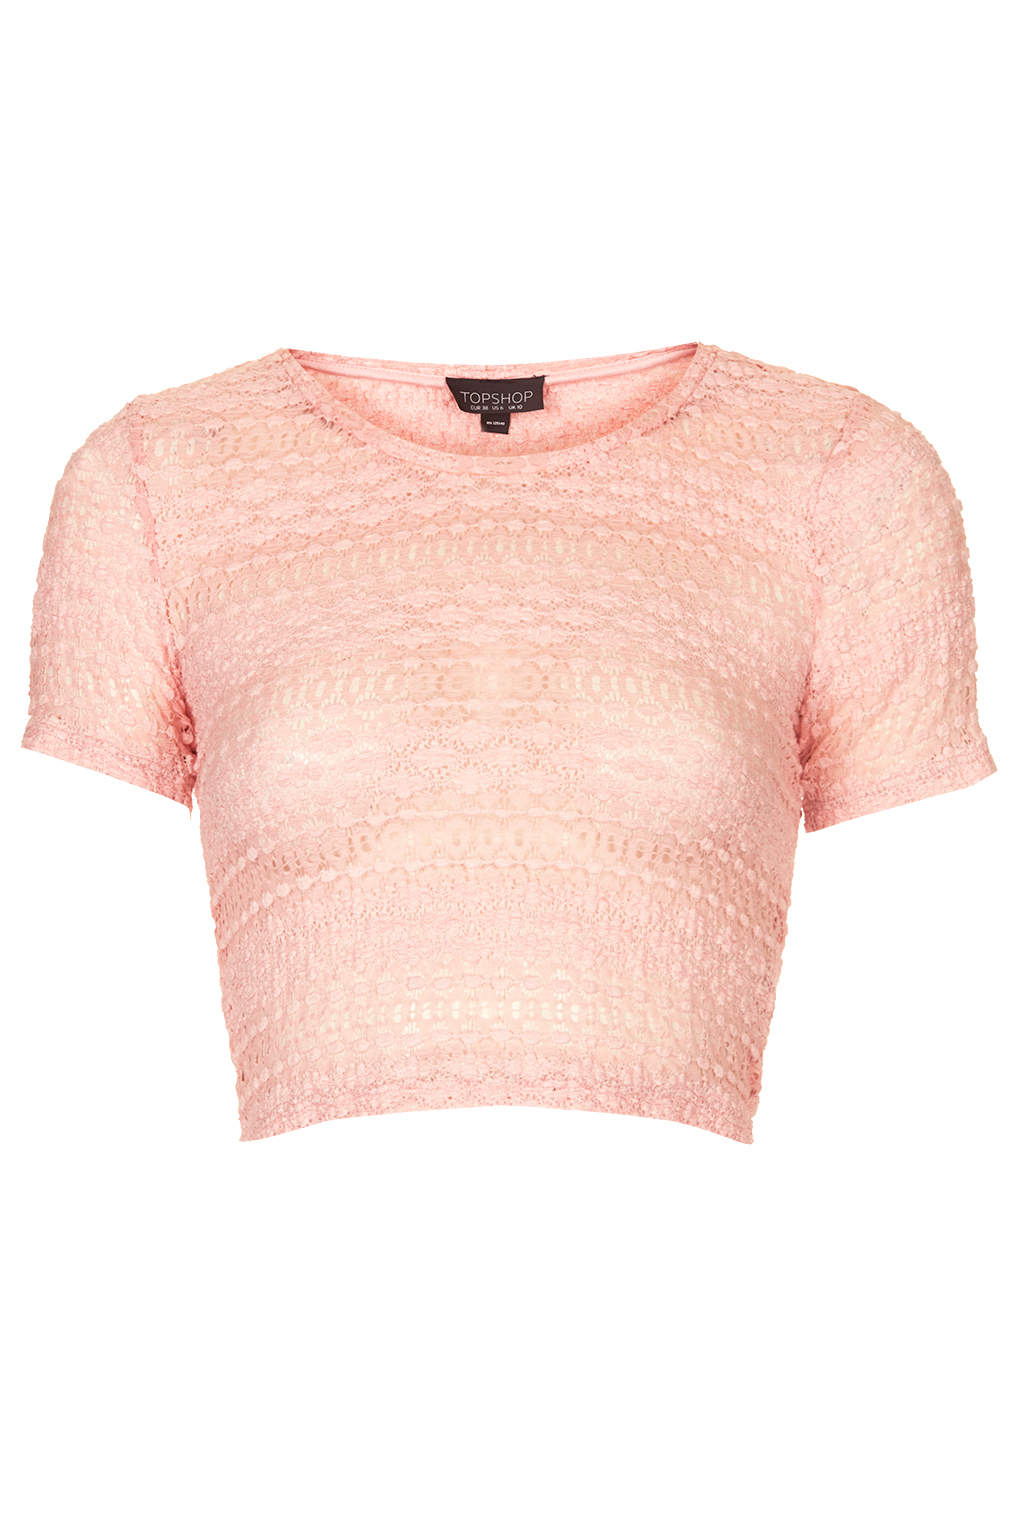 8b6dd133c78dda Lyst - TOPSHOP Womens Bobble Lace Crop Pink in Pink